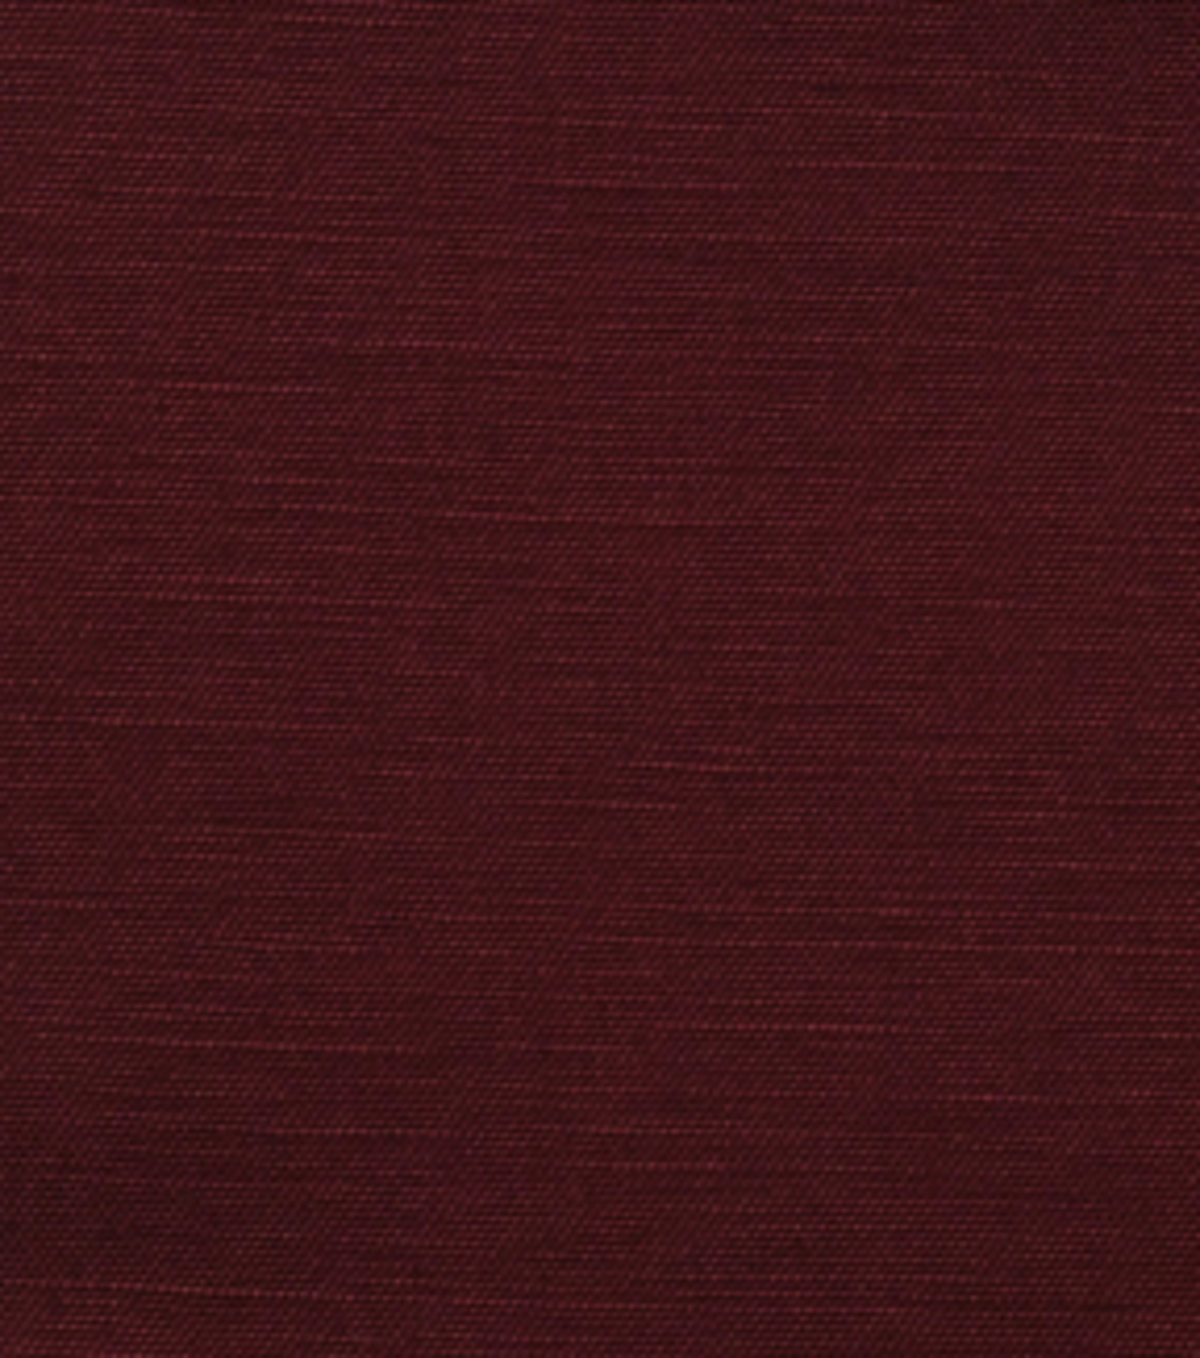 Home Decor 8\u0022x8\u0022 Fabric Swatch-Signature Series Sonoma Linen-Cotton Brandy